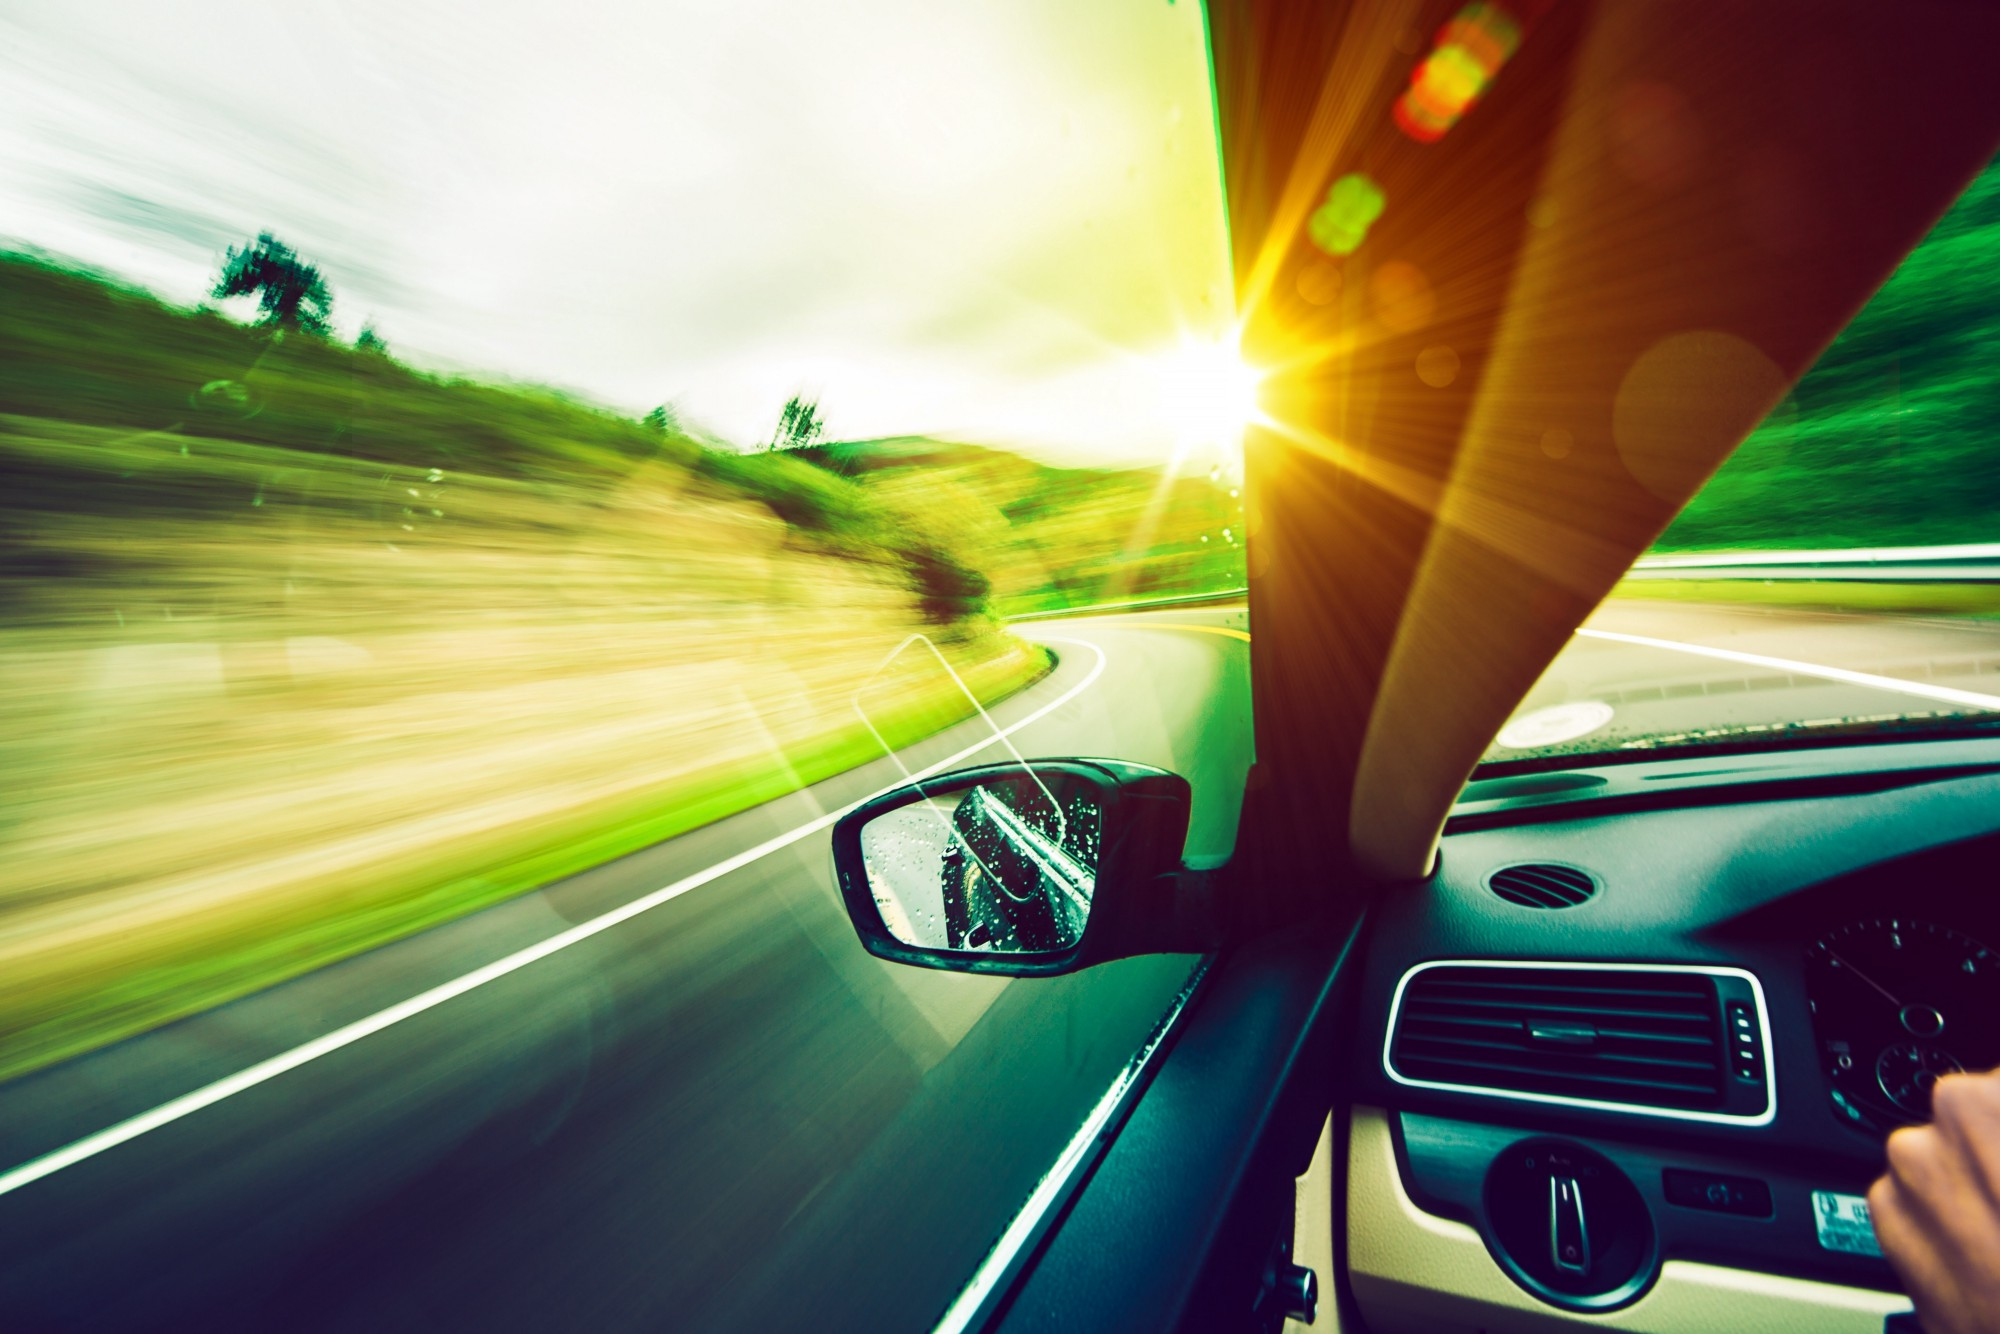 Close-up of car side mirror, racing down the road, sun in the foreground, fantasy-style lighting